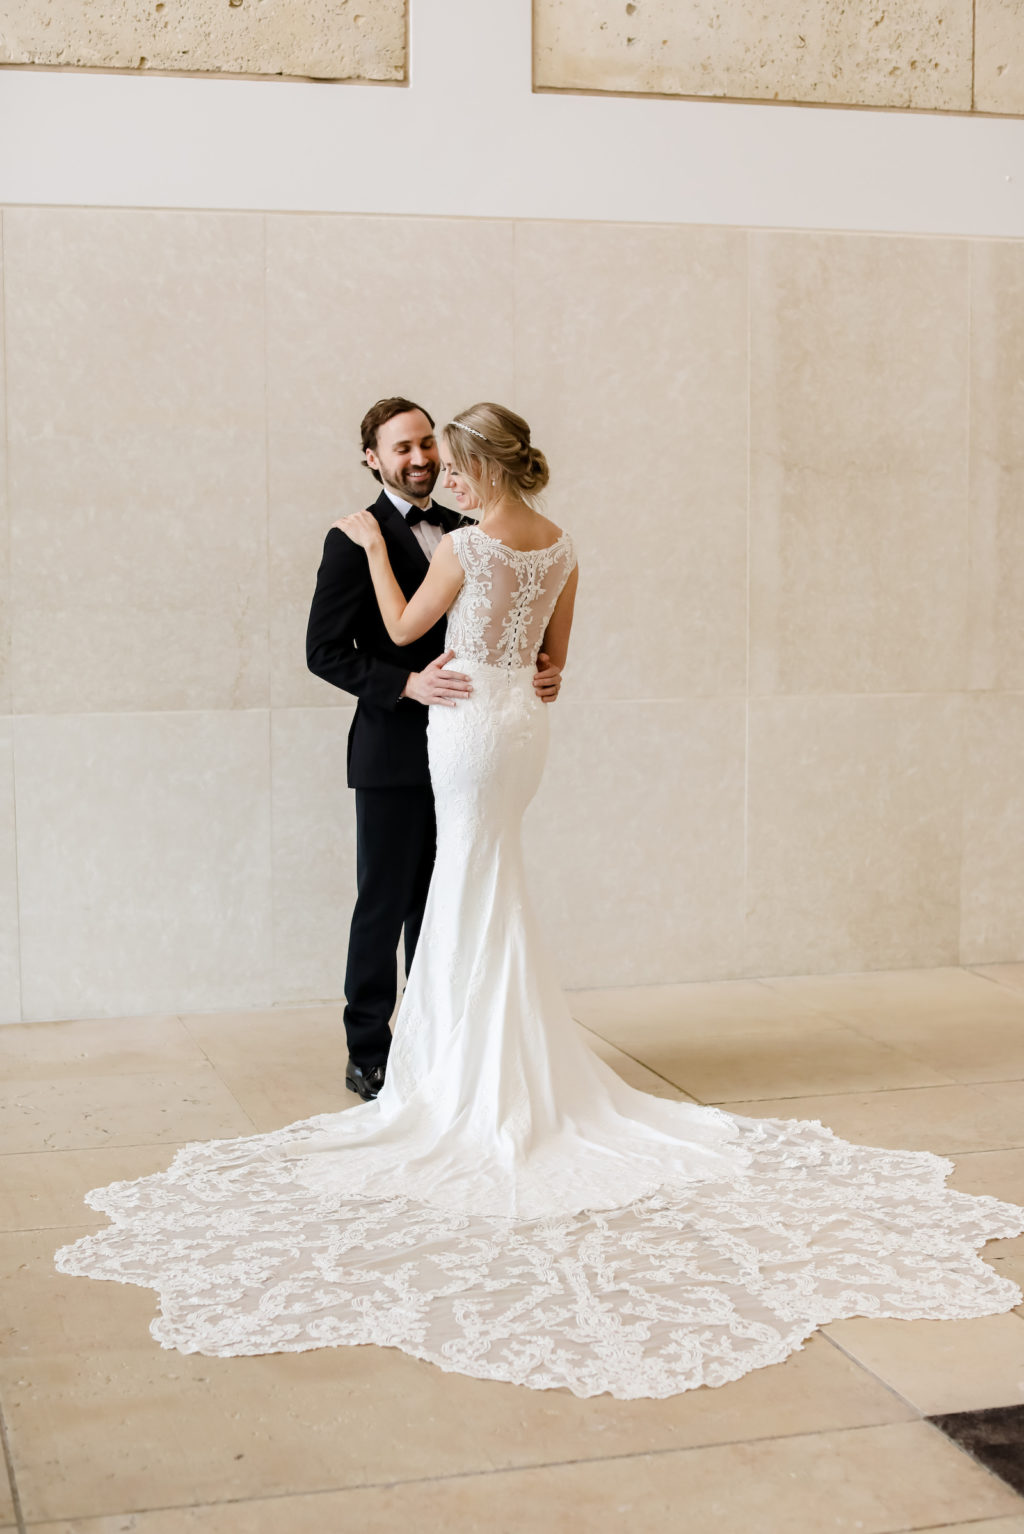 Classic bride in lace and illusion wedding dress with romantic train and groom in black tuxedo   Tampa Bay Wedding Dress and Tux Truly Forever Bridal   Tampa Bay Wedding Hair and Makeup Femme Akoi Beauty Studio   Wedding Photographer Lifelong Photography Studio   Styled Shoot